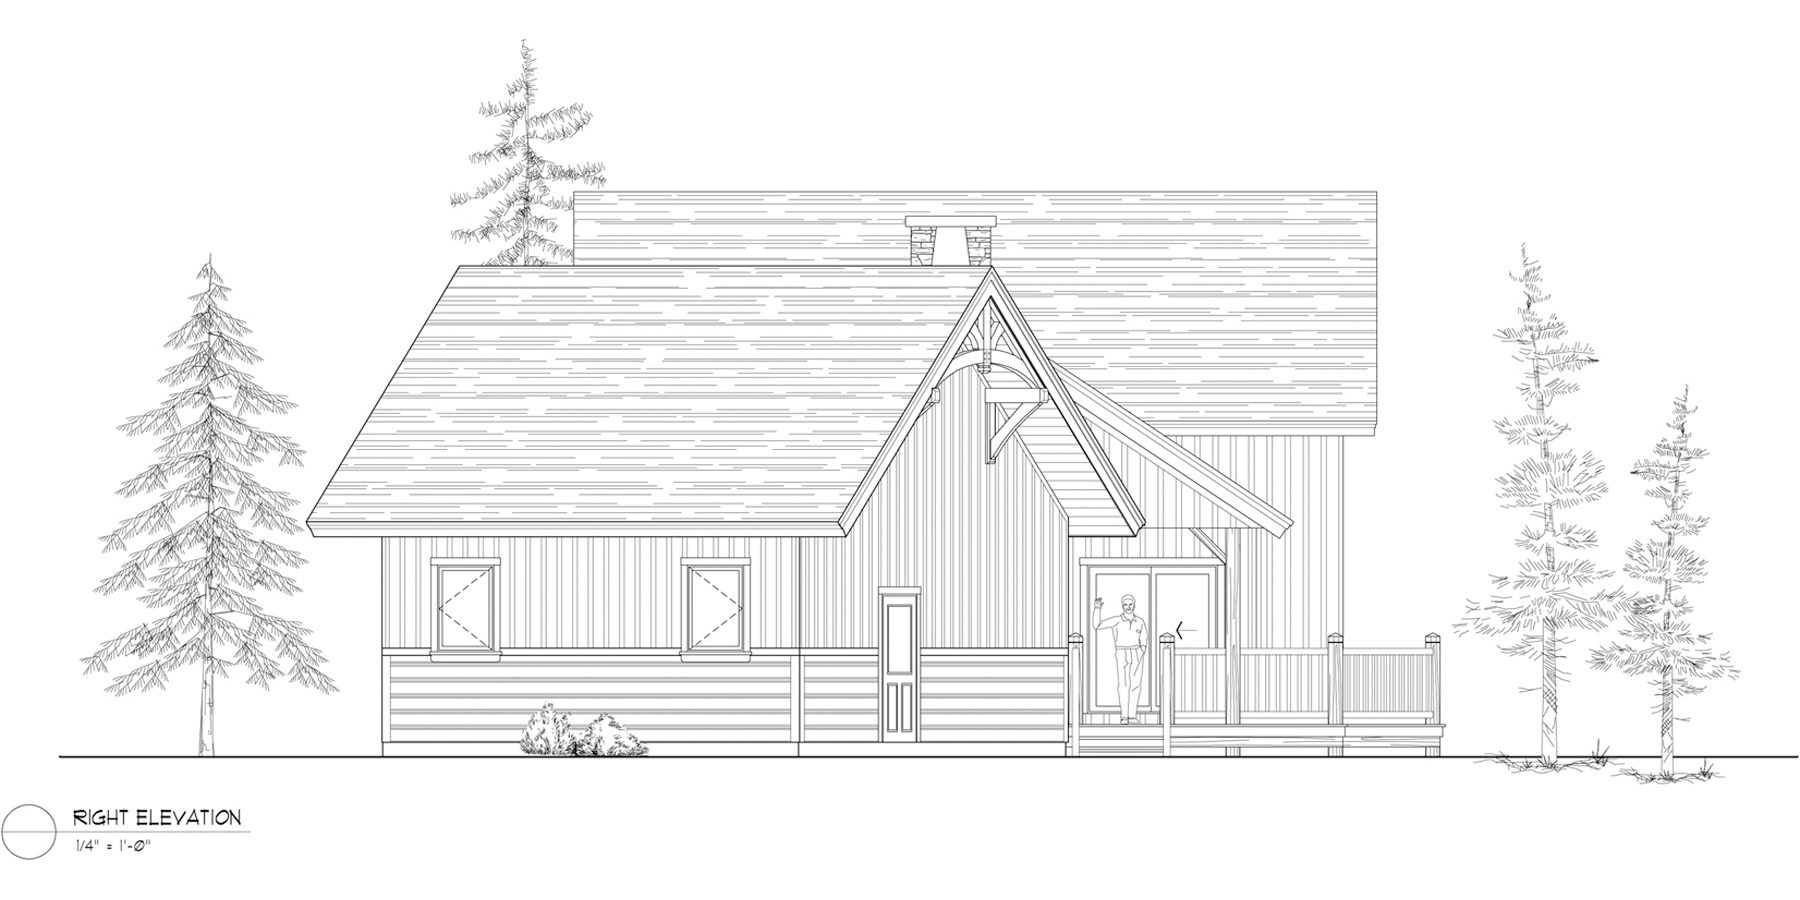 Normerica Timber Frames, House Plan, Algoma 3538, Right Elevation